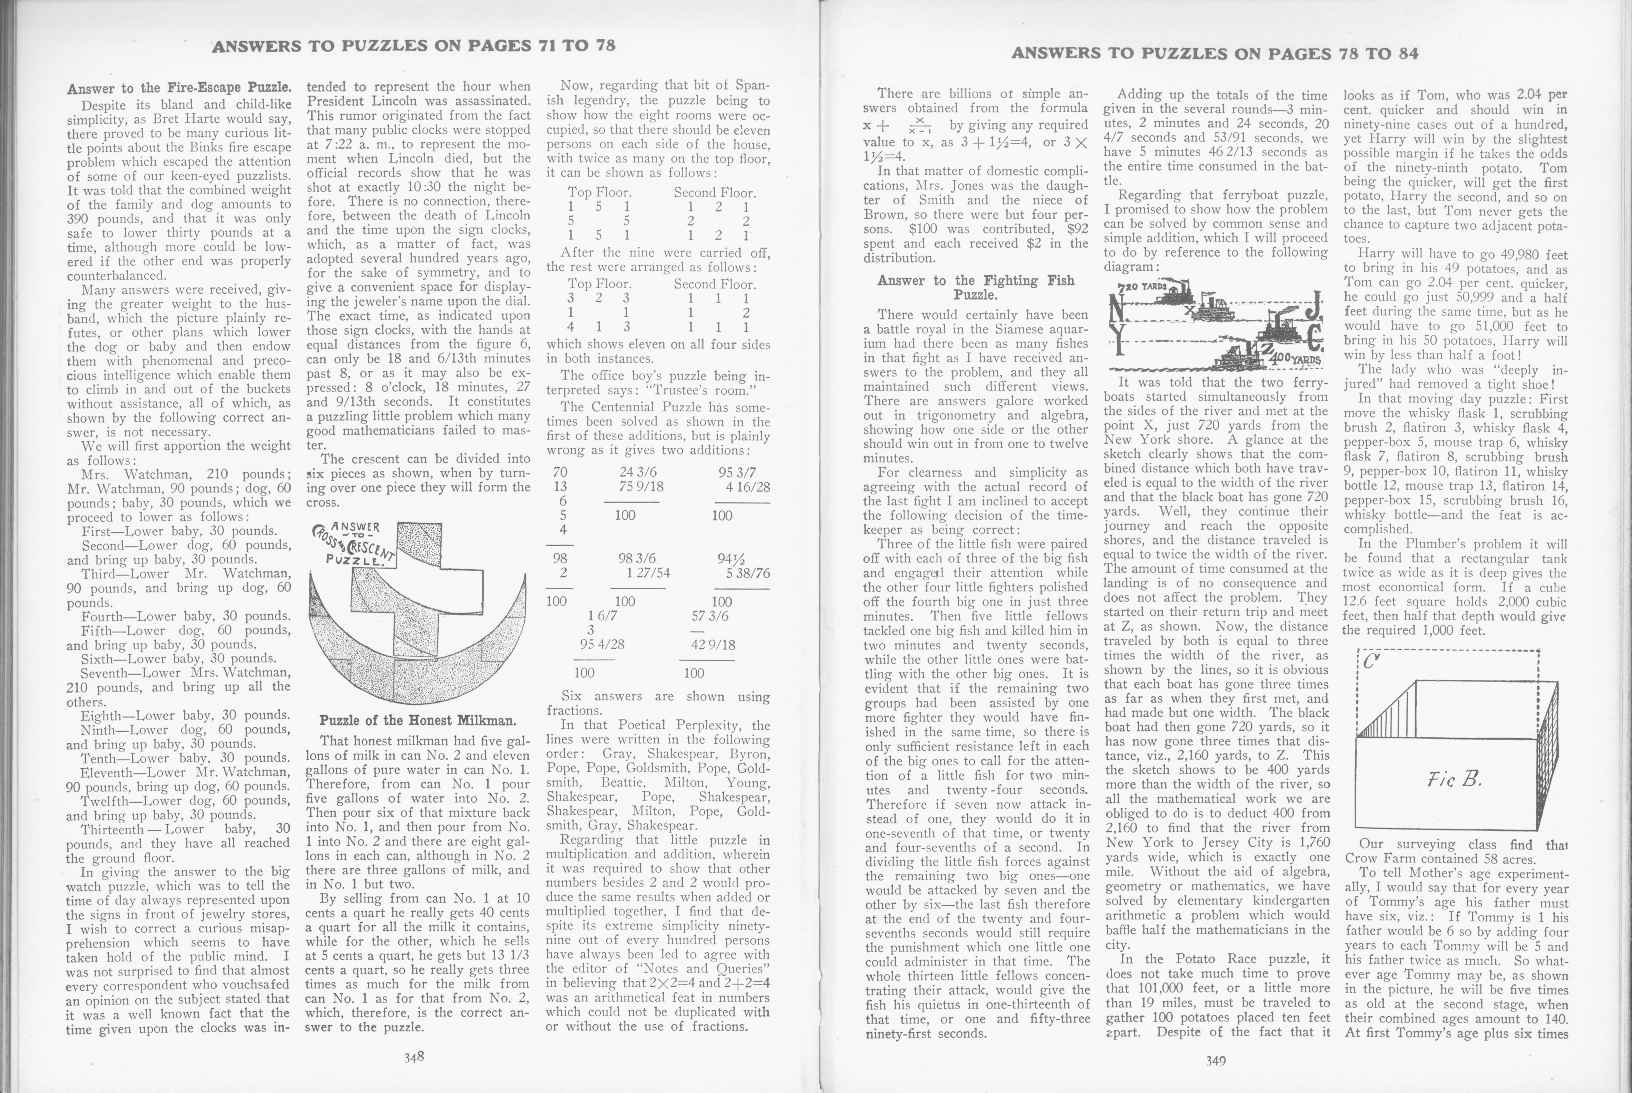 Sam Loyd - Cyclopedia of Puzzles - page 348-349